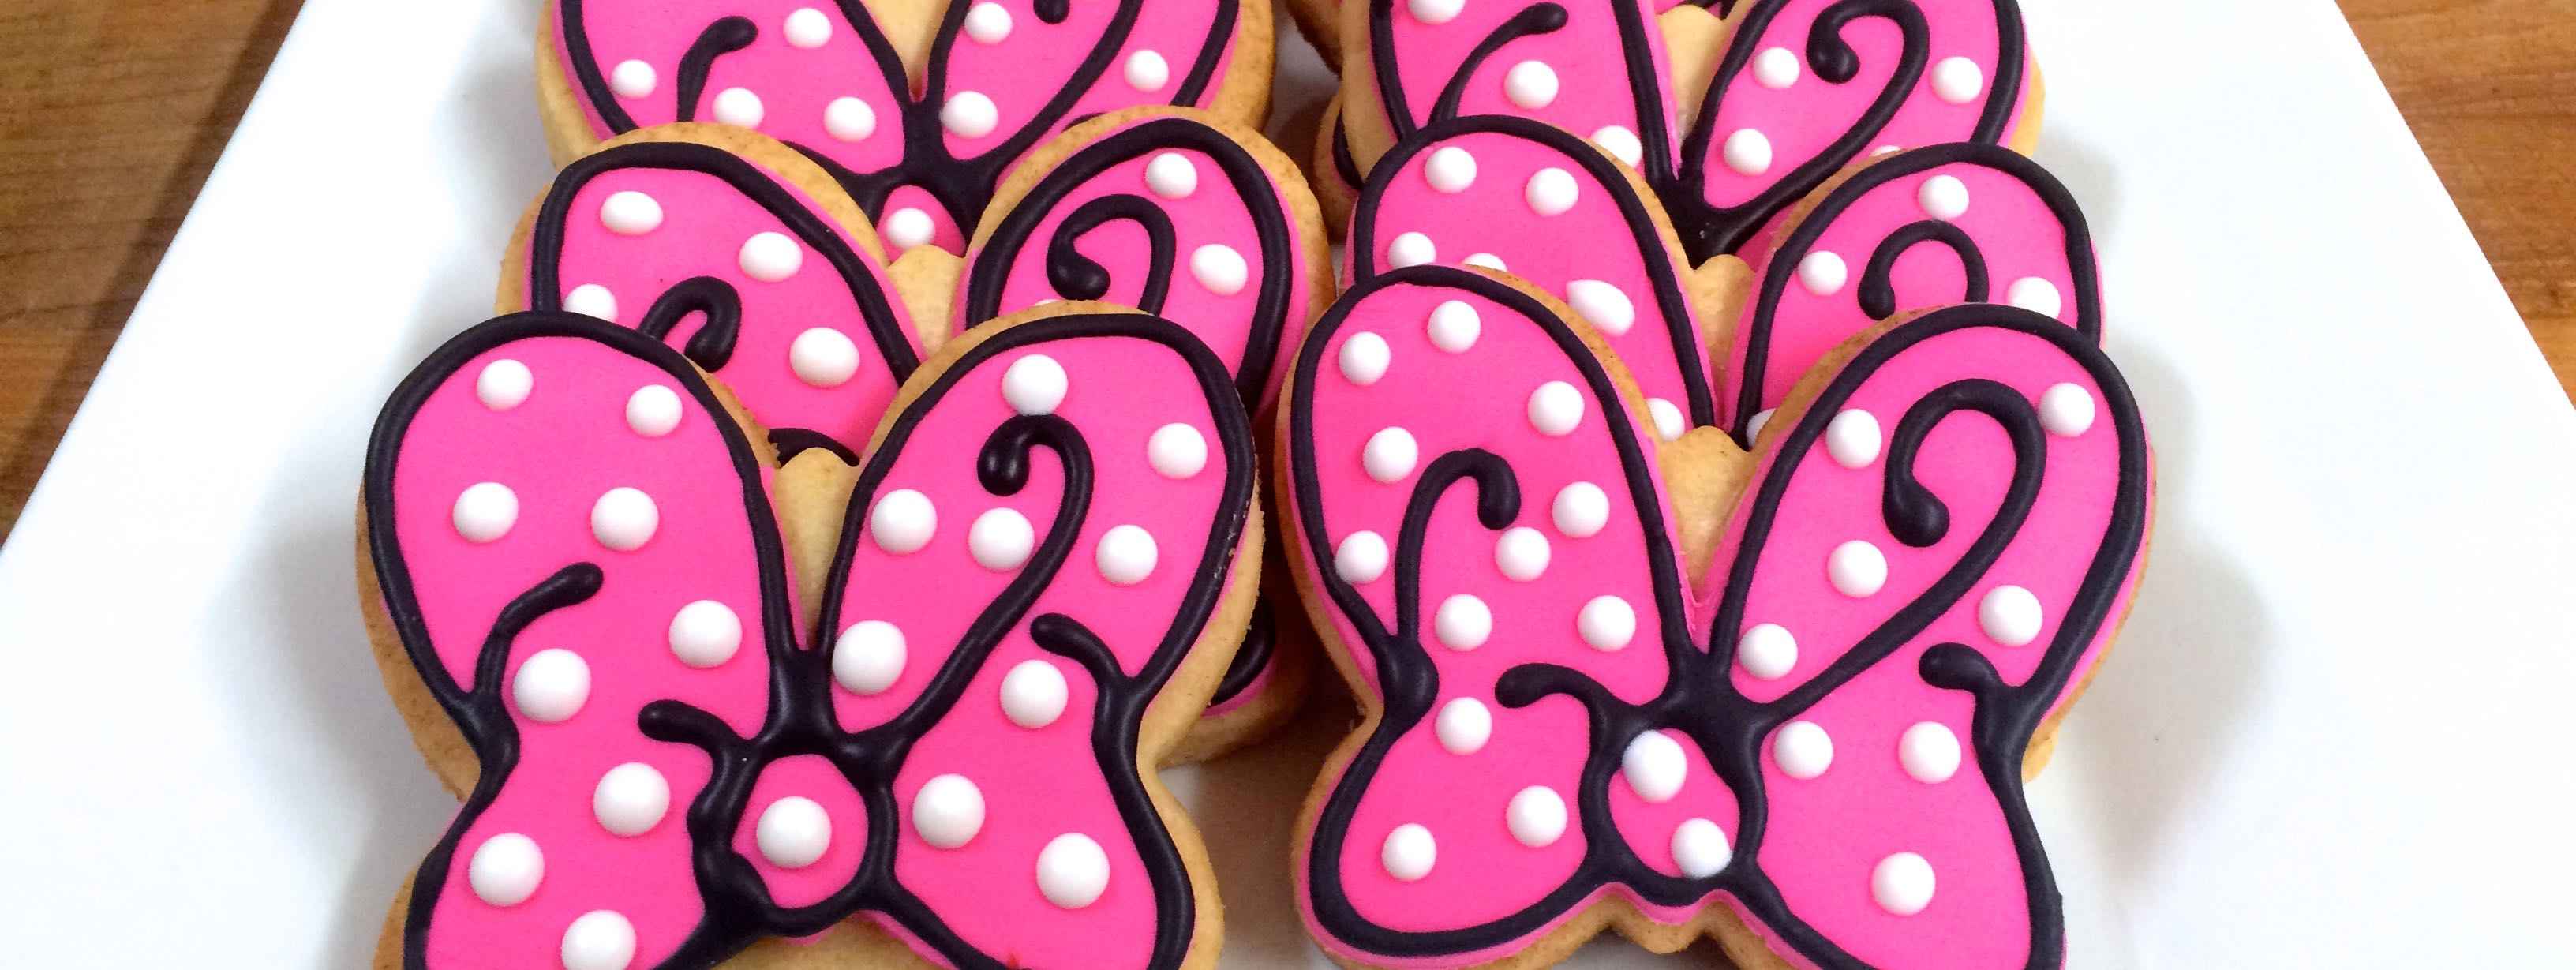 Minnie Mouse Theme Specialized Cookies